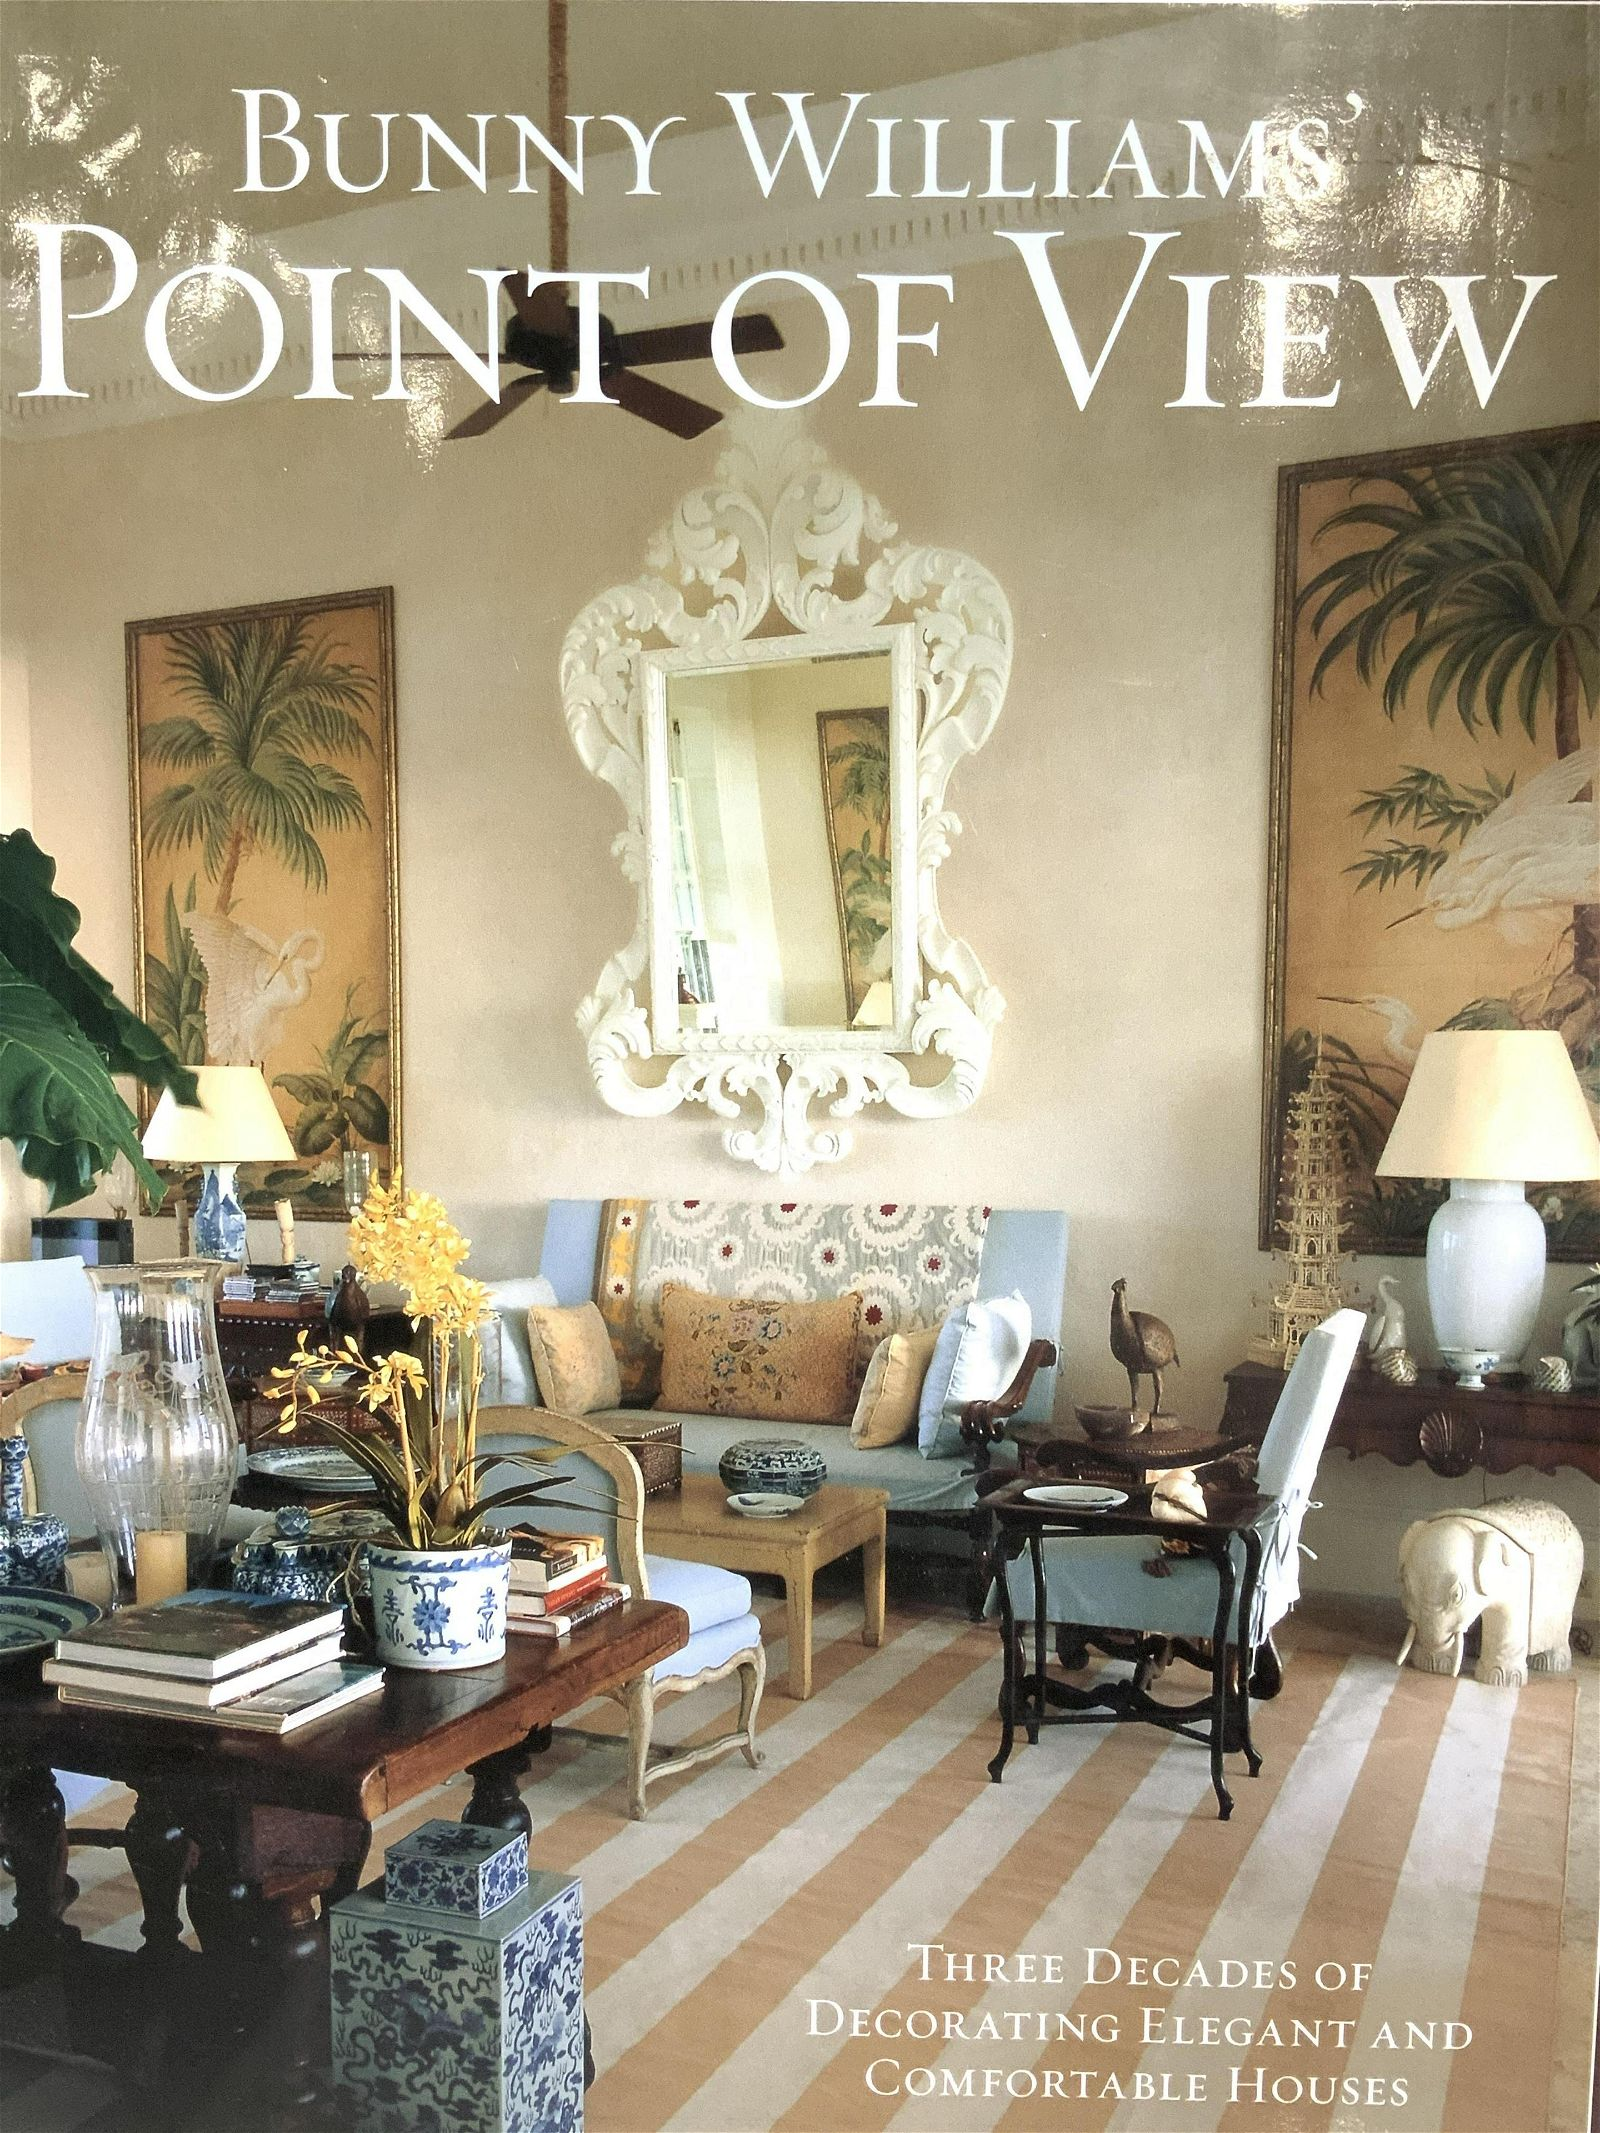 Decorating Book, Bunny Williams' Point of View